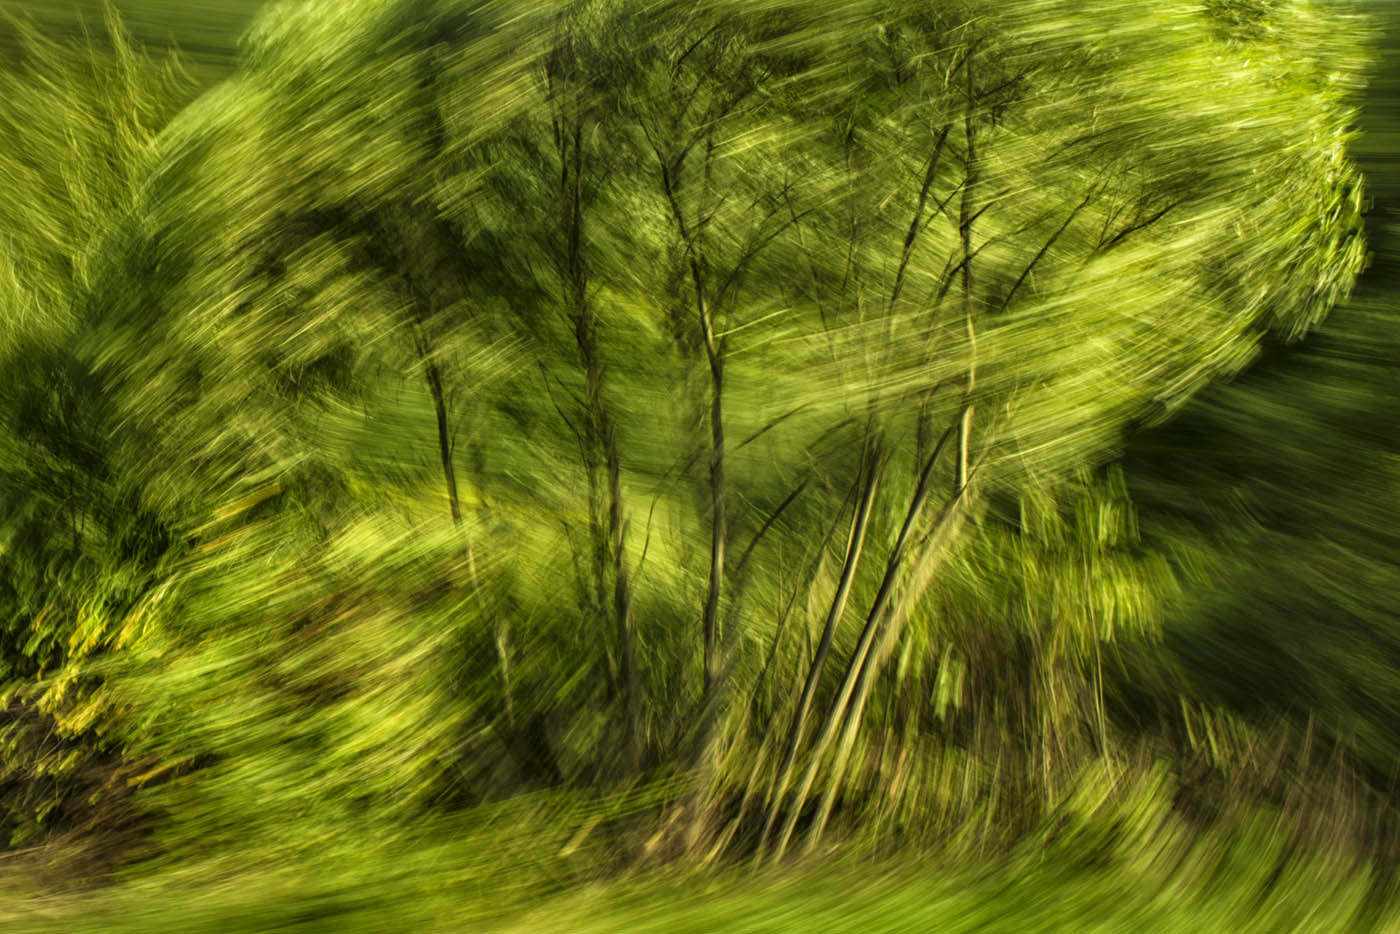 Photograph Spinning nature 2 by daniel vojtech on 500px